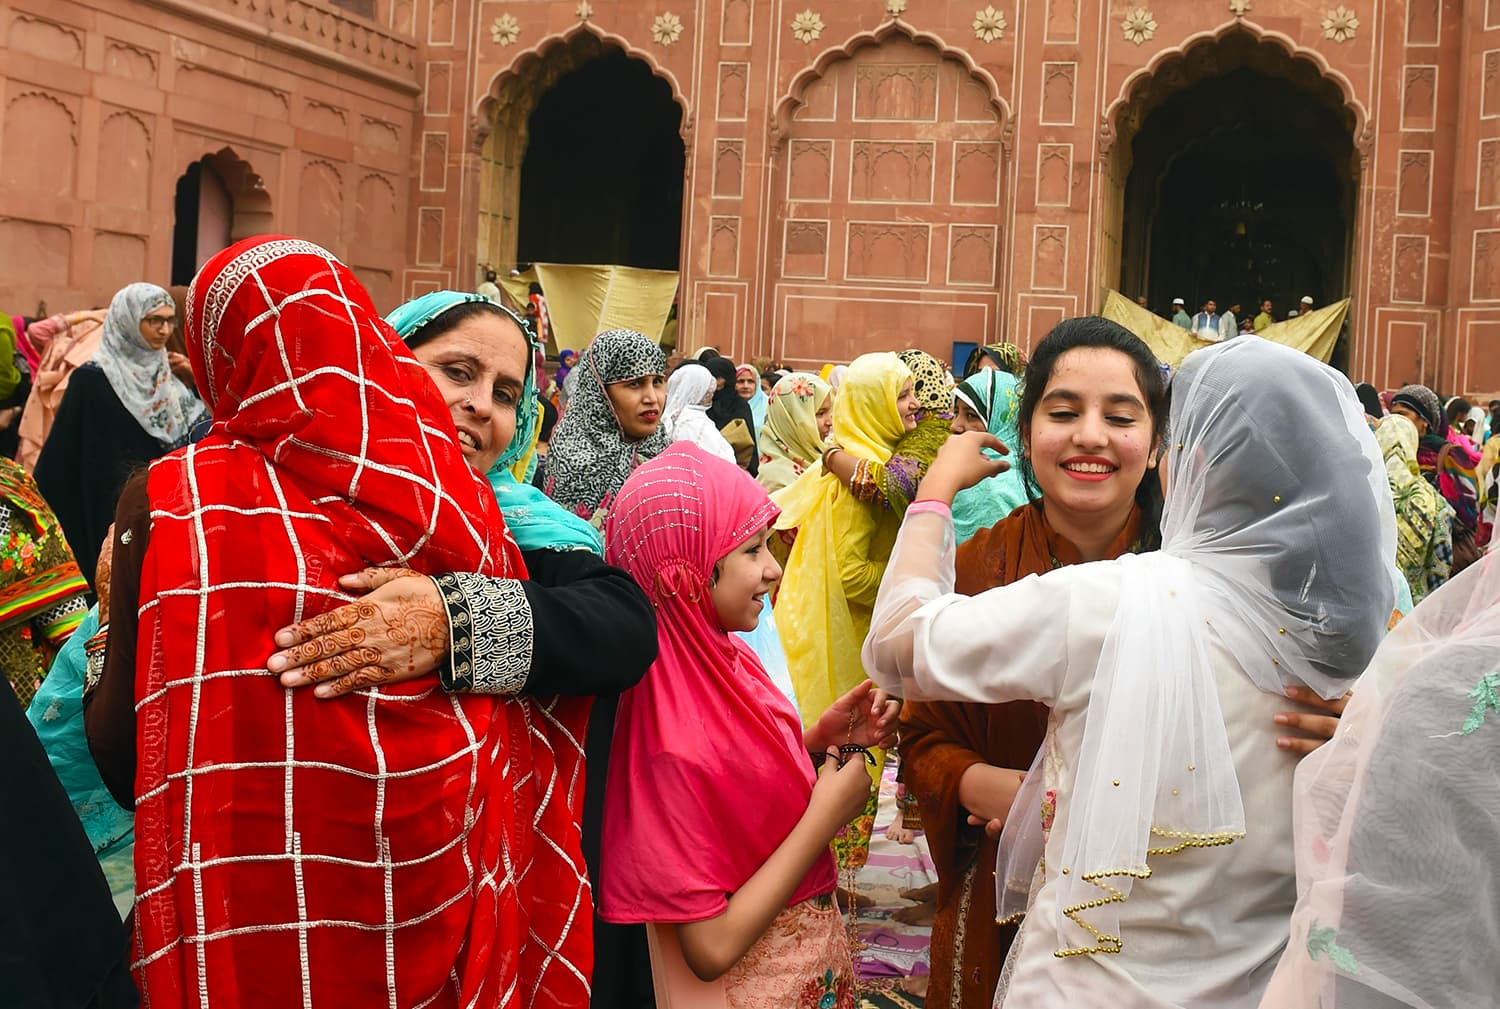 Women exchange Eid greetings after offering Eidul Fitr prayers at the Badshahi Mosque in Lahore. — AFP